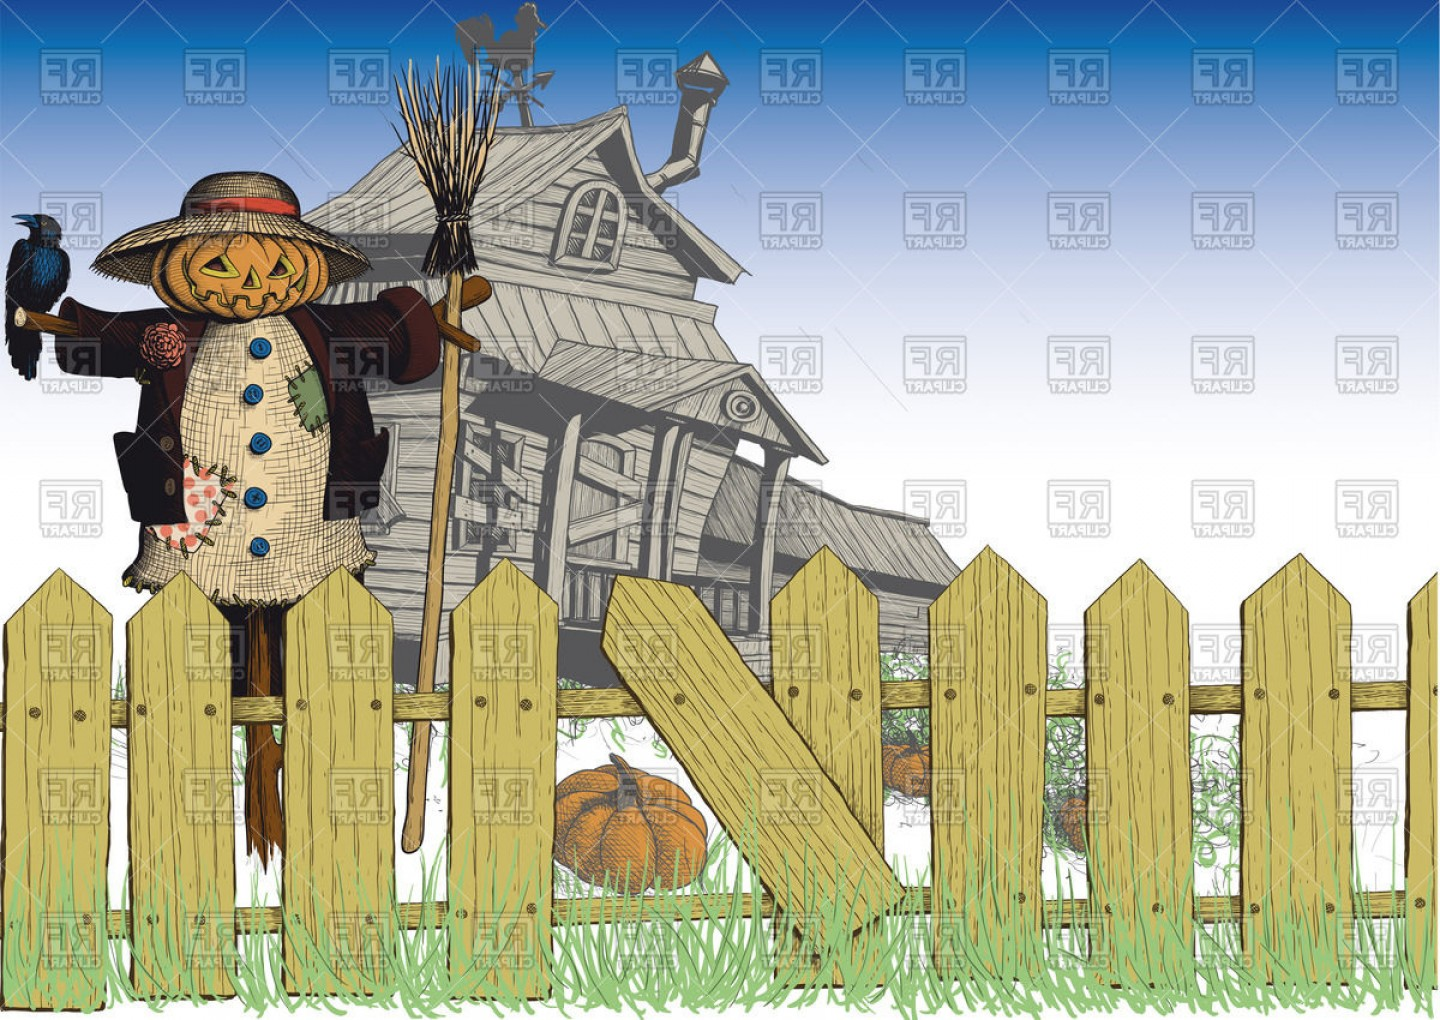 Scarecrow Vector Art: Halloween Card With Wooden Dilapidated House Scarecrow And Fence Vector Clipart